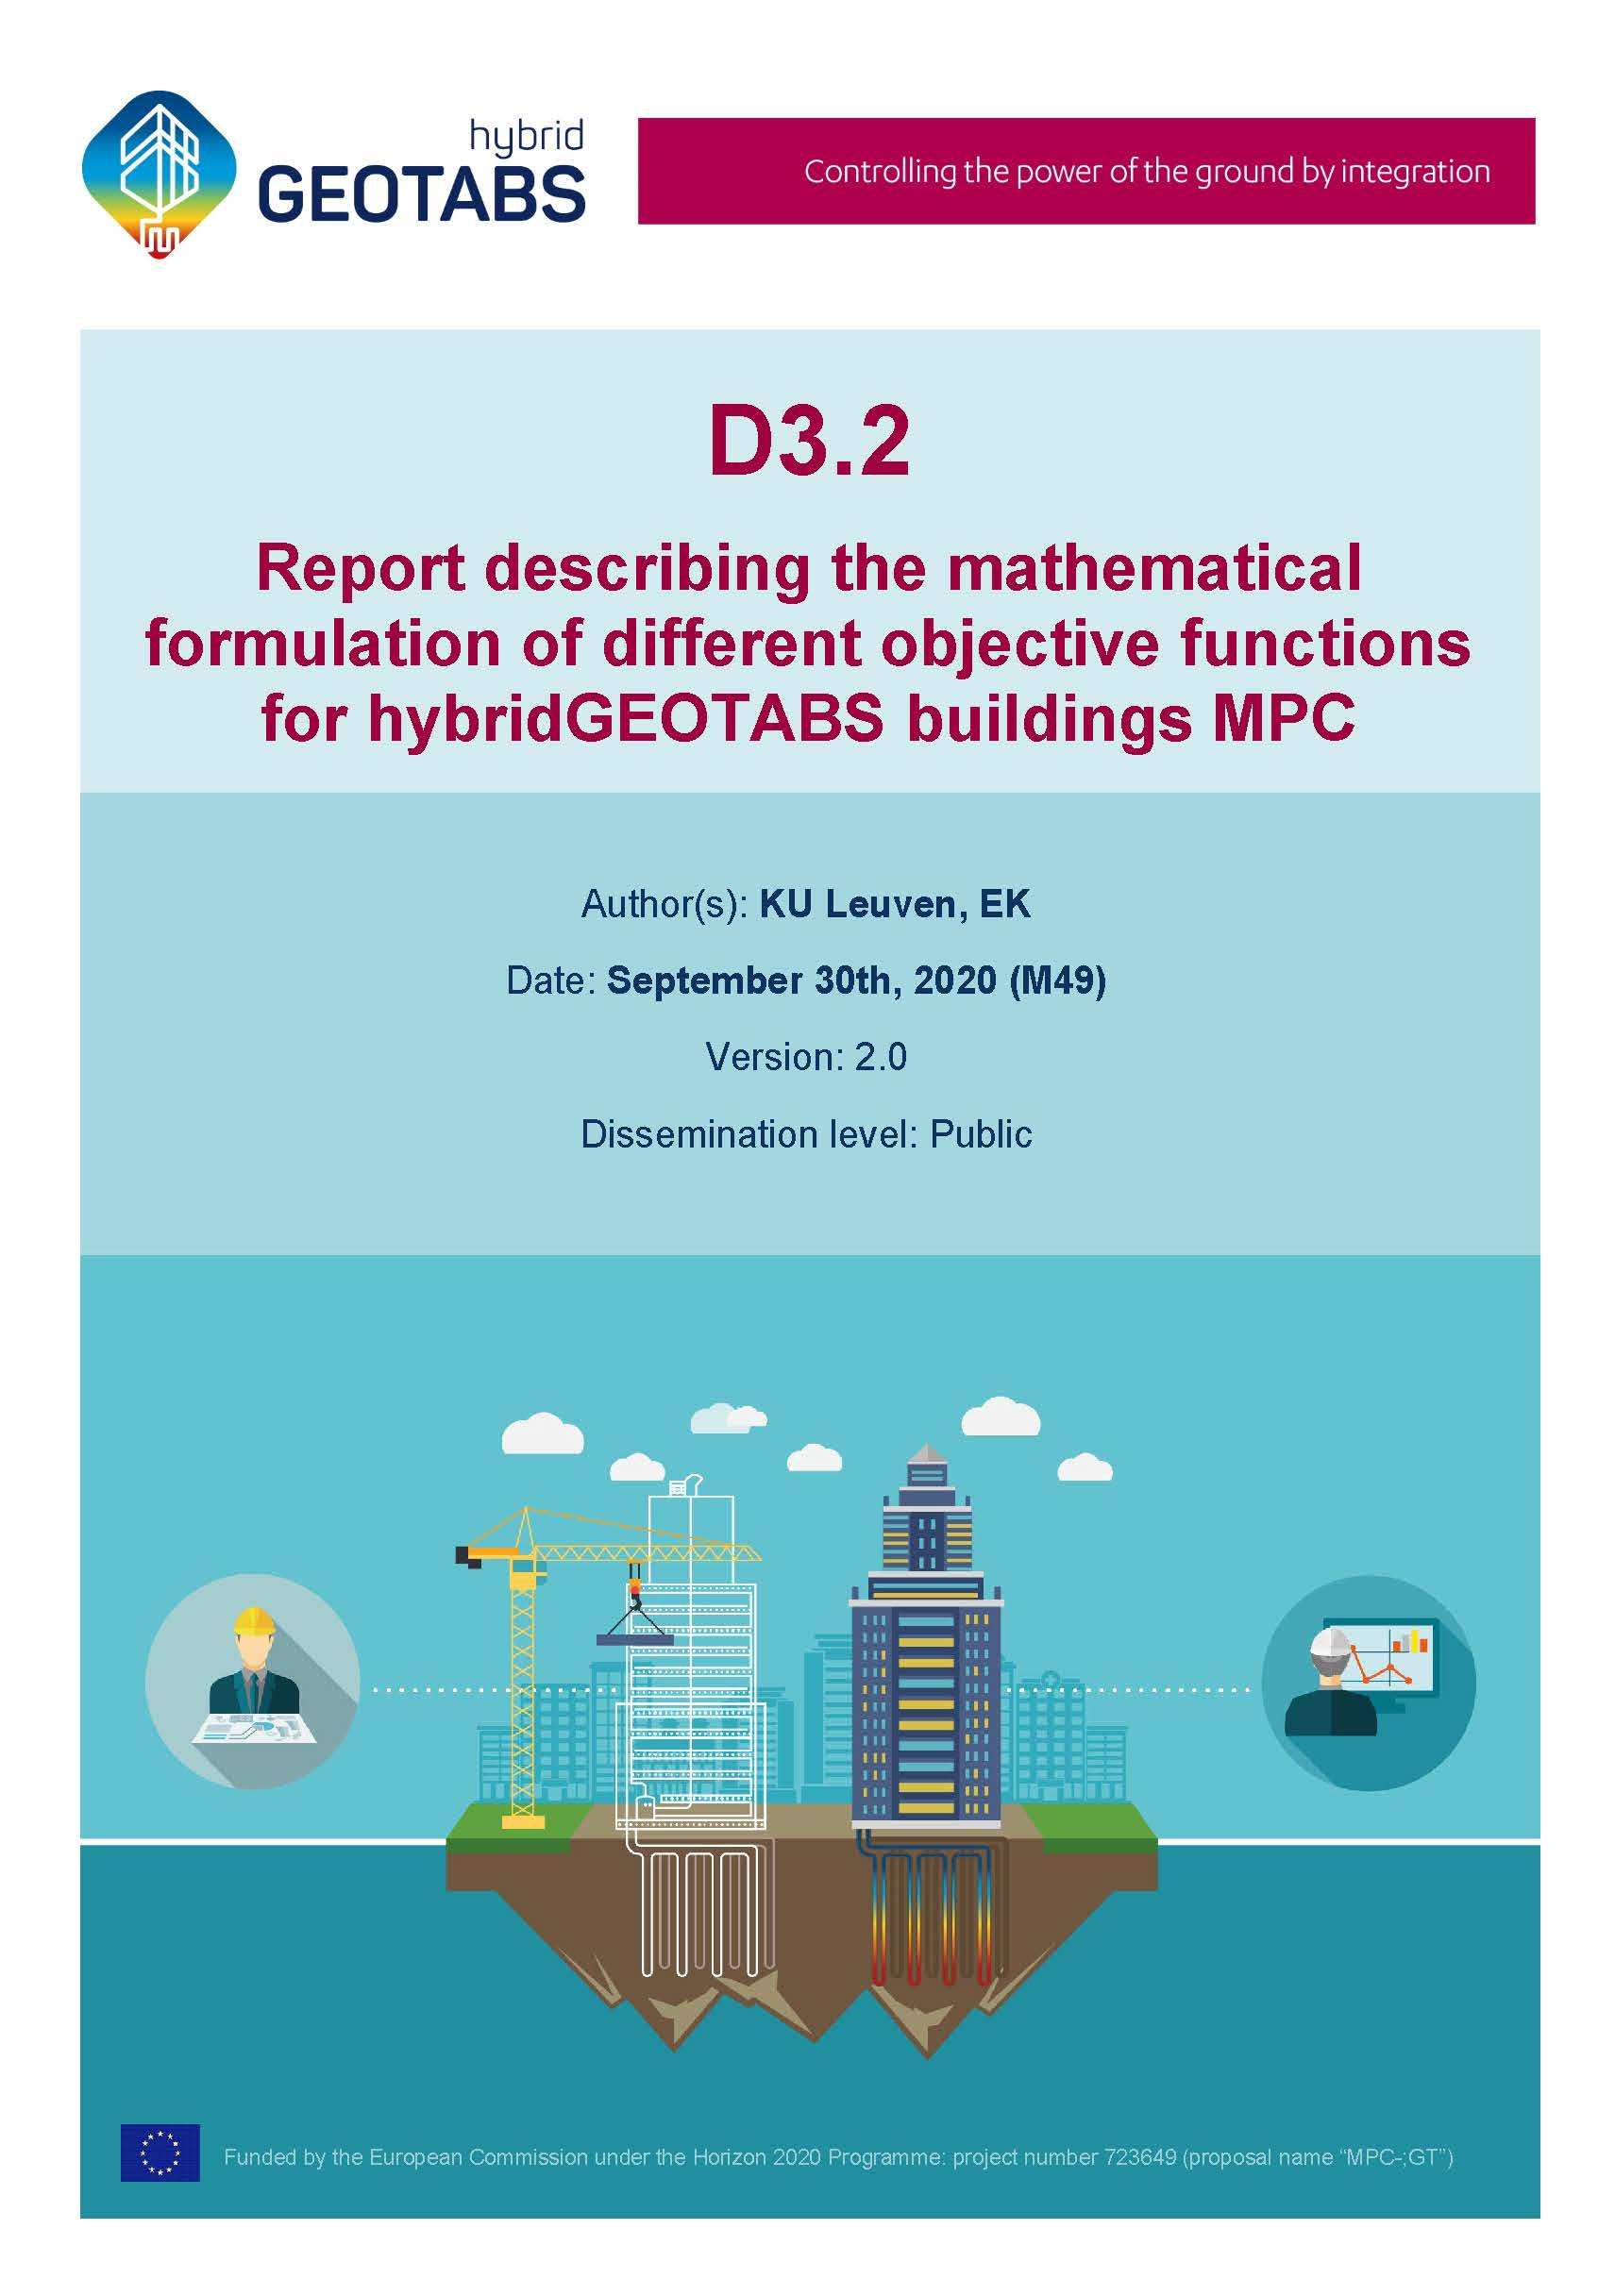 D3.2 Report describing the mathematical formulation of different objective functions for hybridGEOTABS buildings MPC